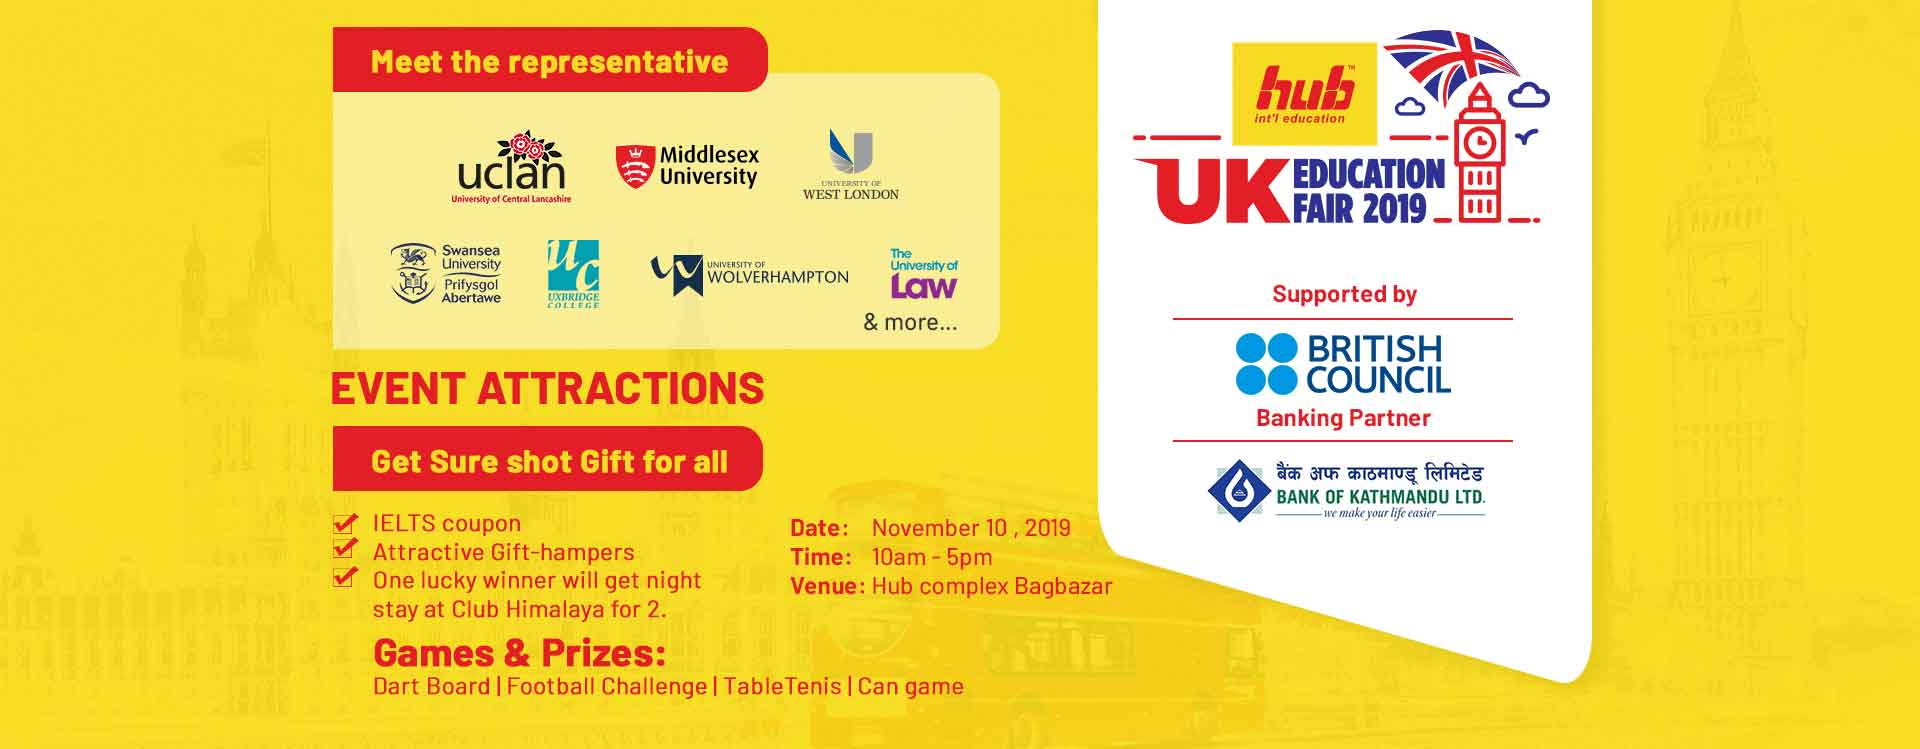 UK Education FAIR 2019